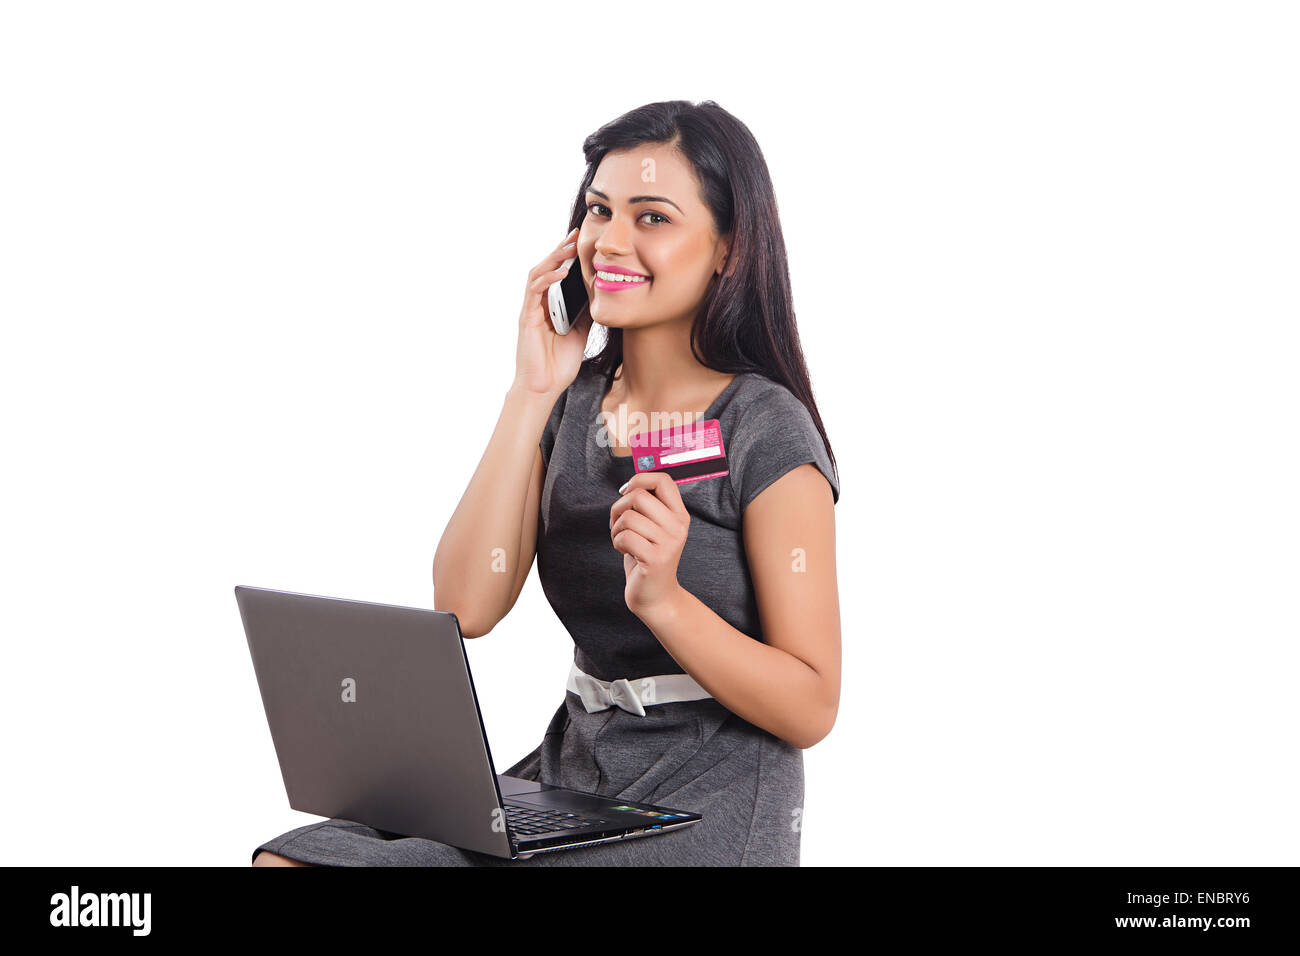 1 indian business woman credit card shoping laptop and talking phone 1 indian business woman credit card shoping laptop and talking phone reheart Images